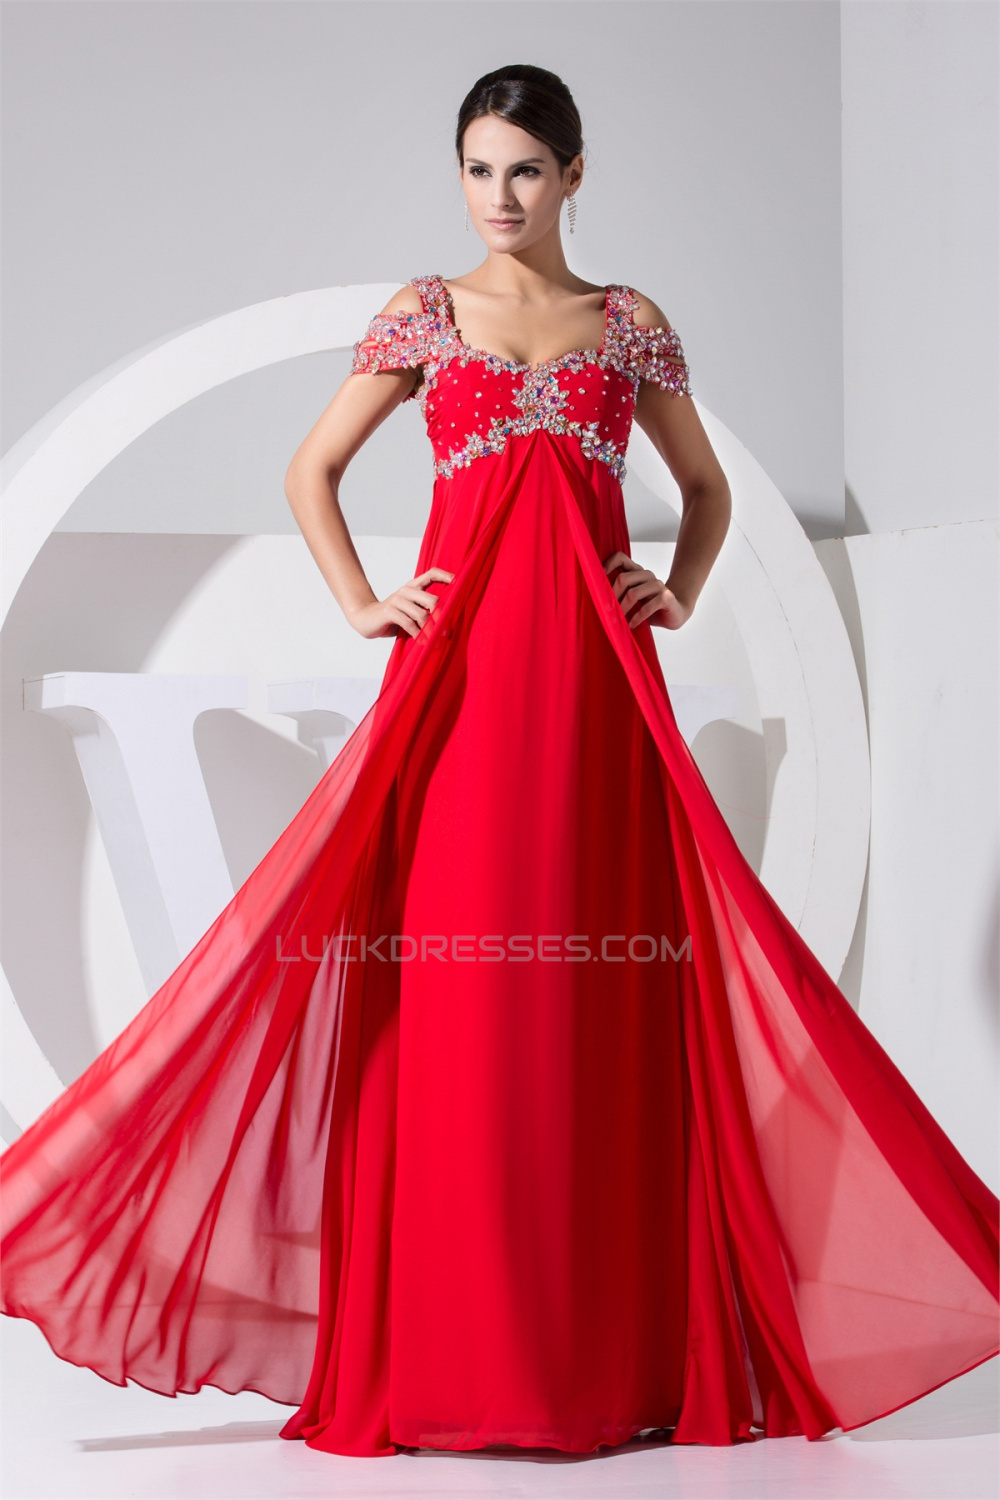 5fb79a2d6dac0 Empire Floor-Length Straps Beading Long Red Prom Evening Formal Maternity  Dresses 02020296